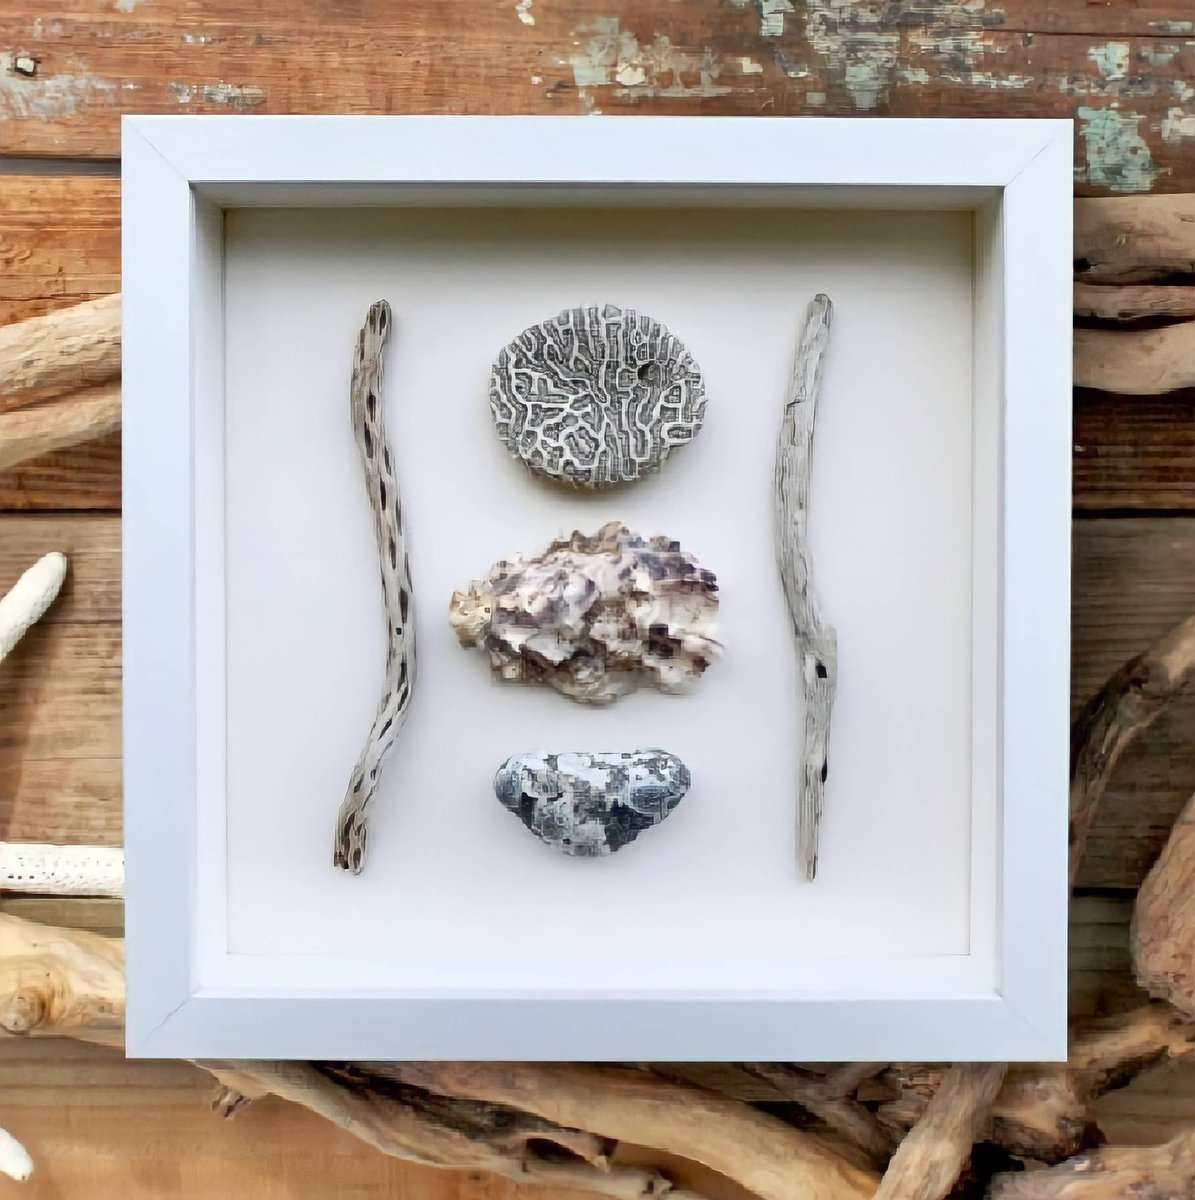 There's a wonderful simplicity about this coastal box frame, carefully made from items collected along the shoreline. #boxframe #treasures #shoreline #simple #coastal #seaside #beach #gifts #coastaldecor   https://t.co/DaHIROzH09 https://t.co/5Uc4w6H7q9